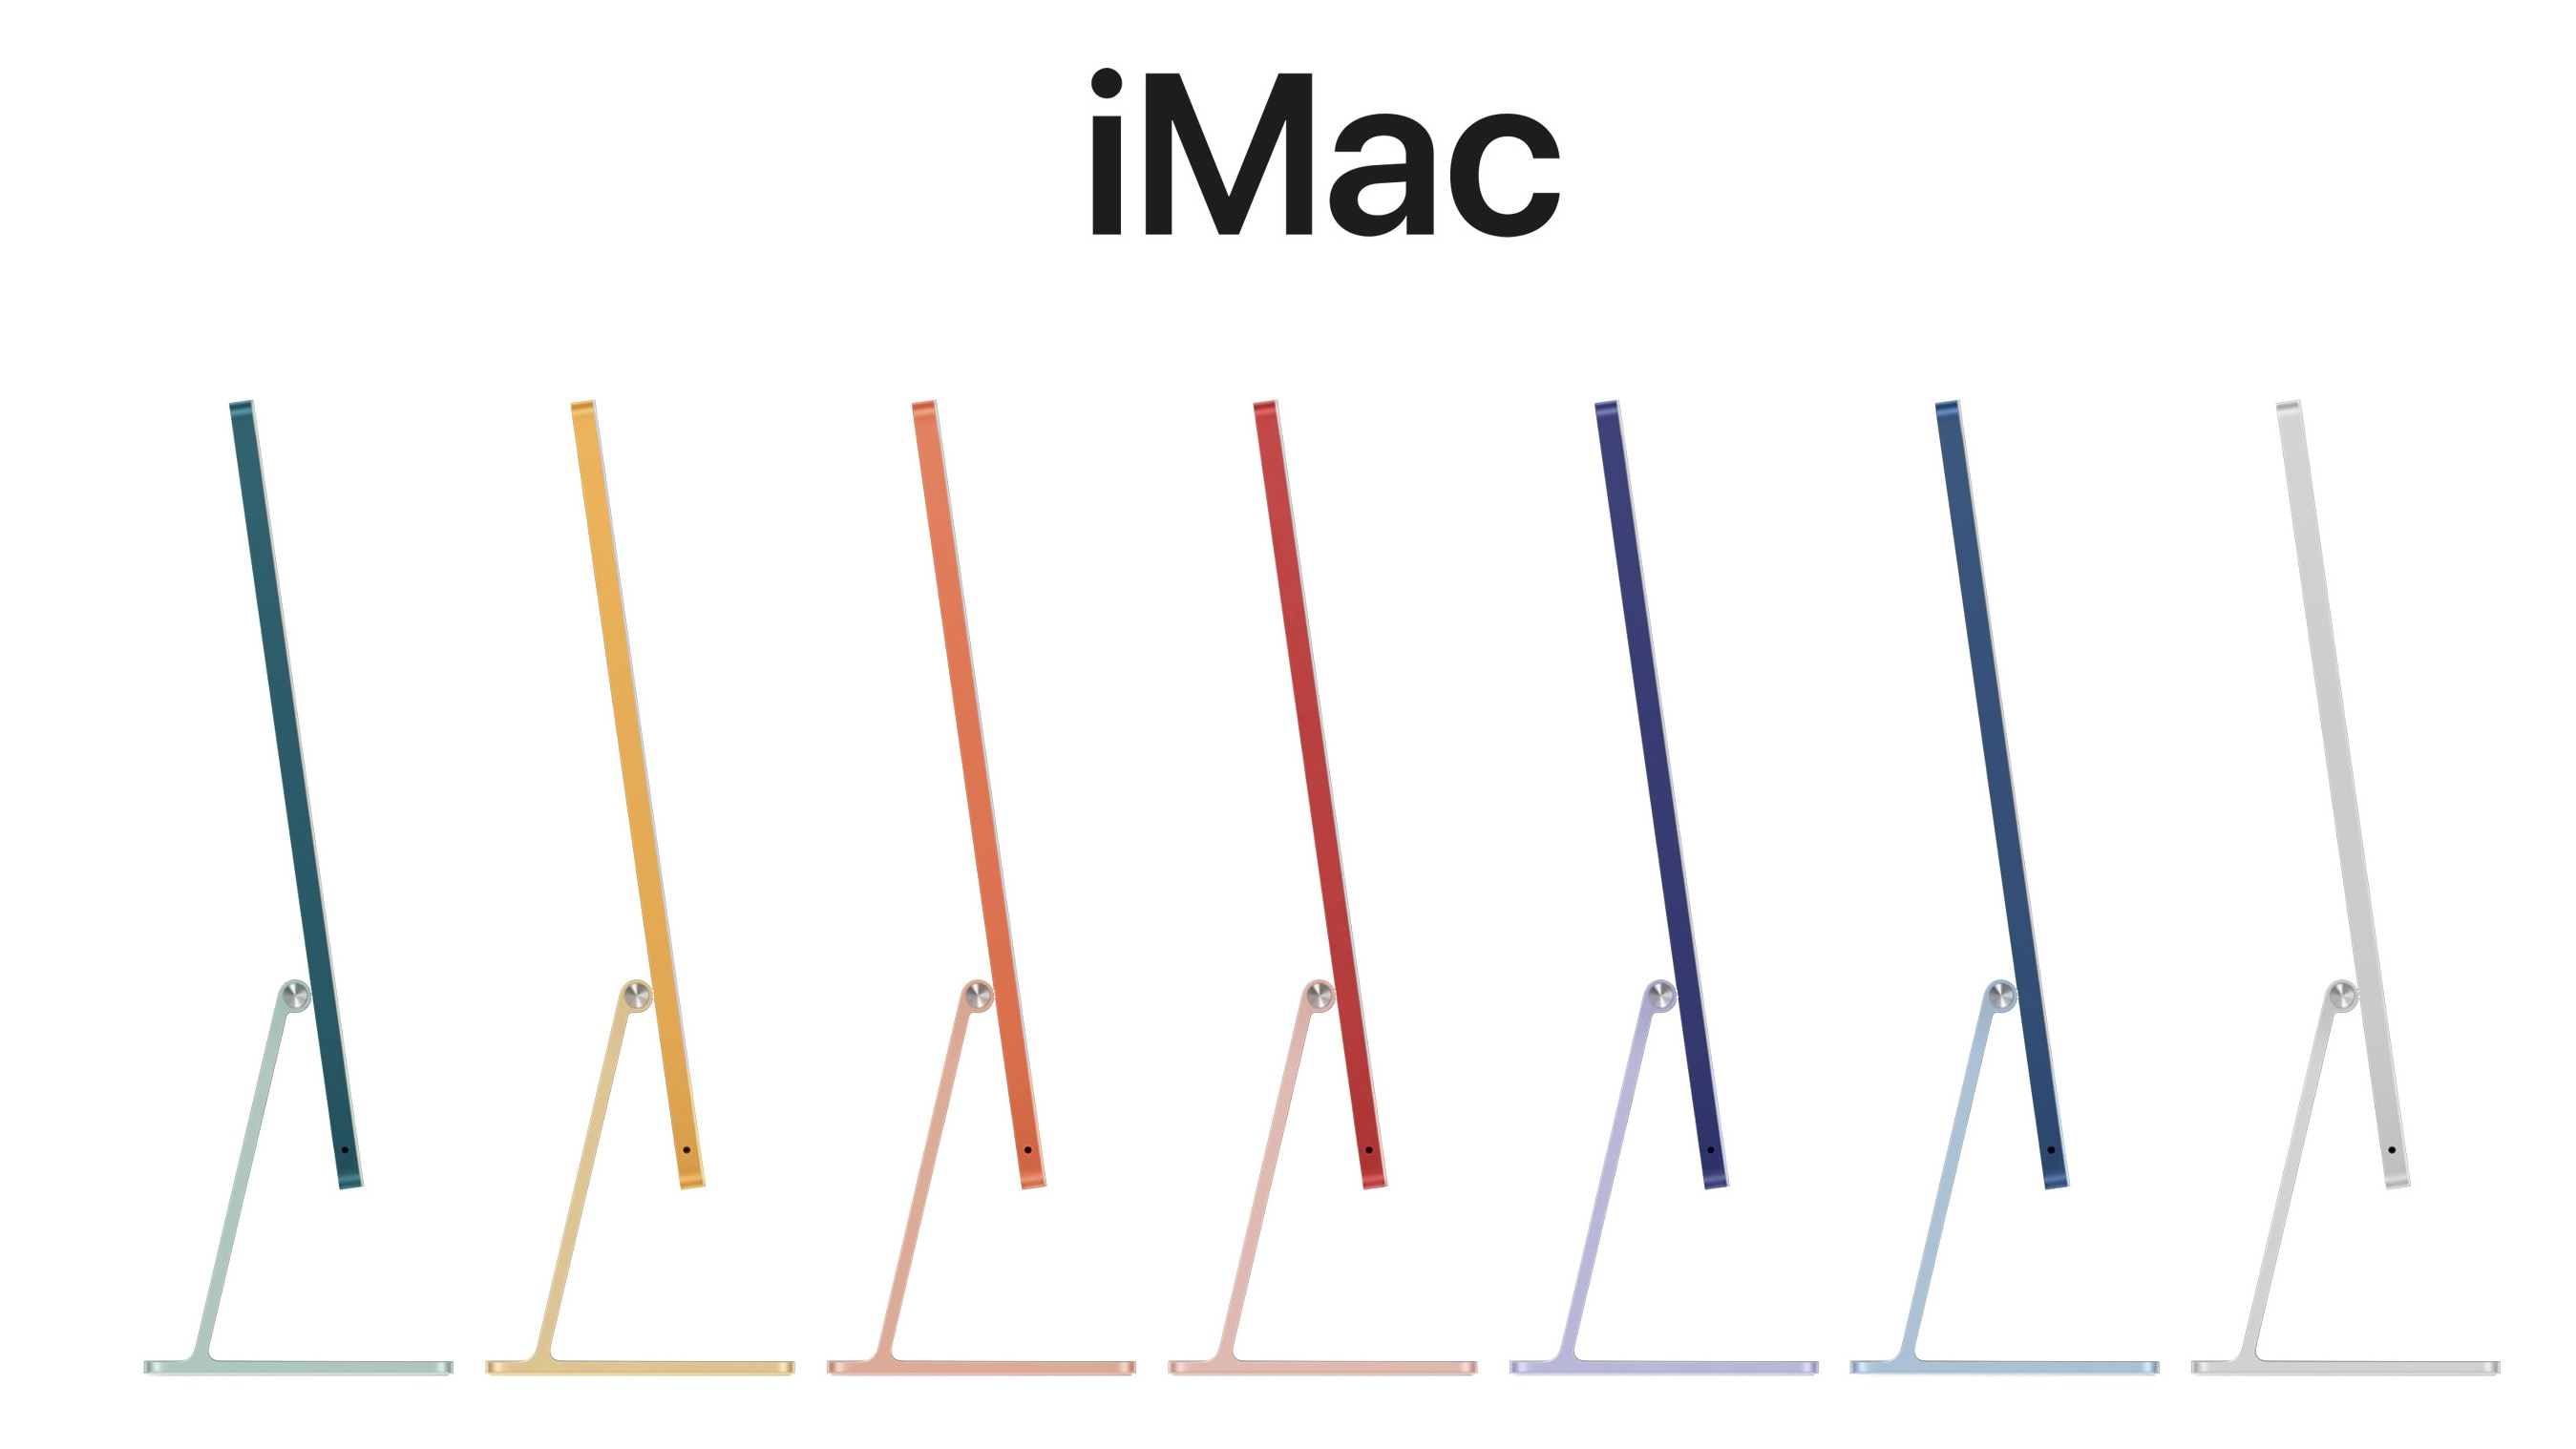 2021 iMac: Release date, features, specs, and more - 9to5Mac